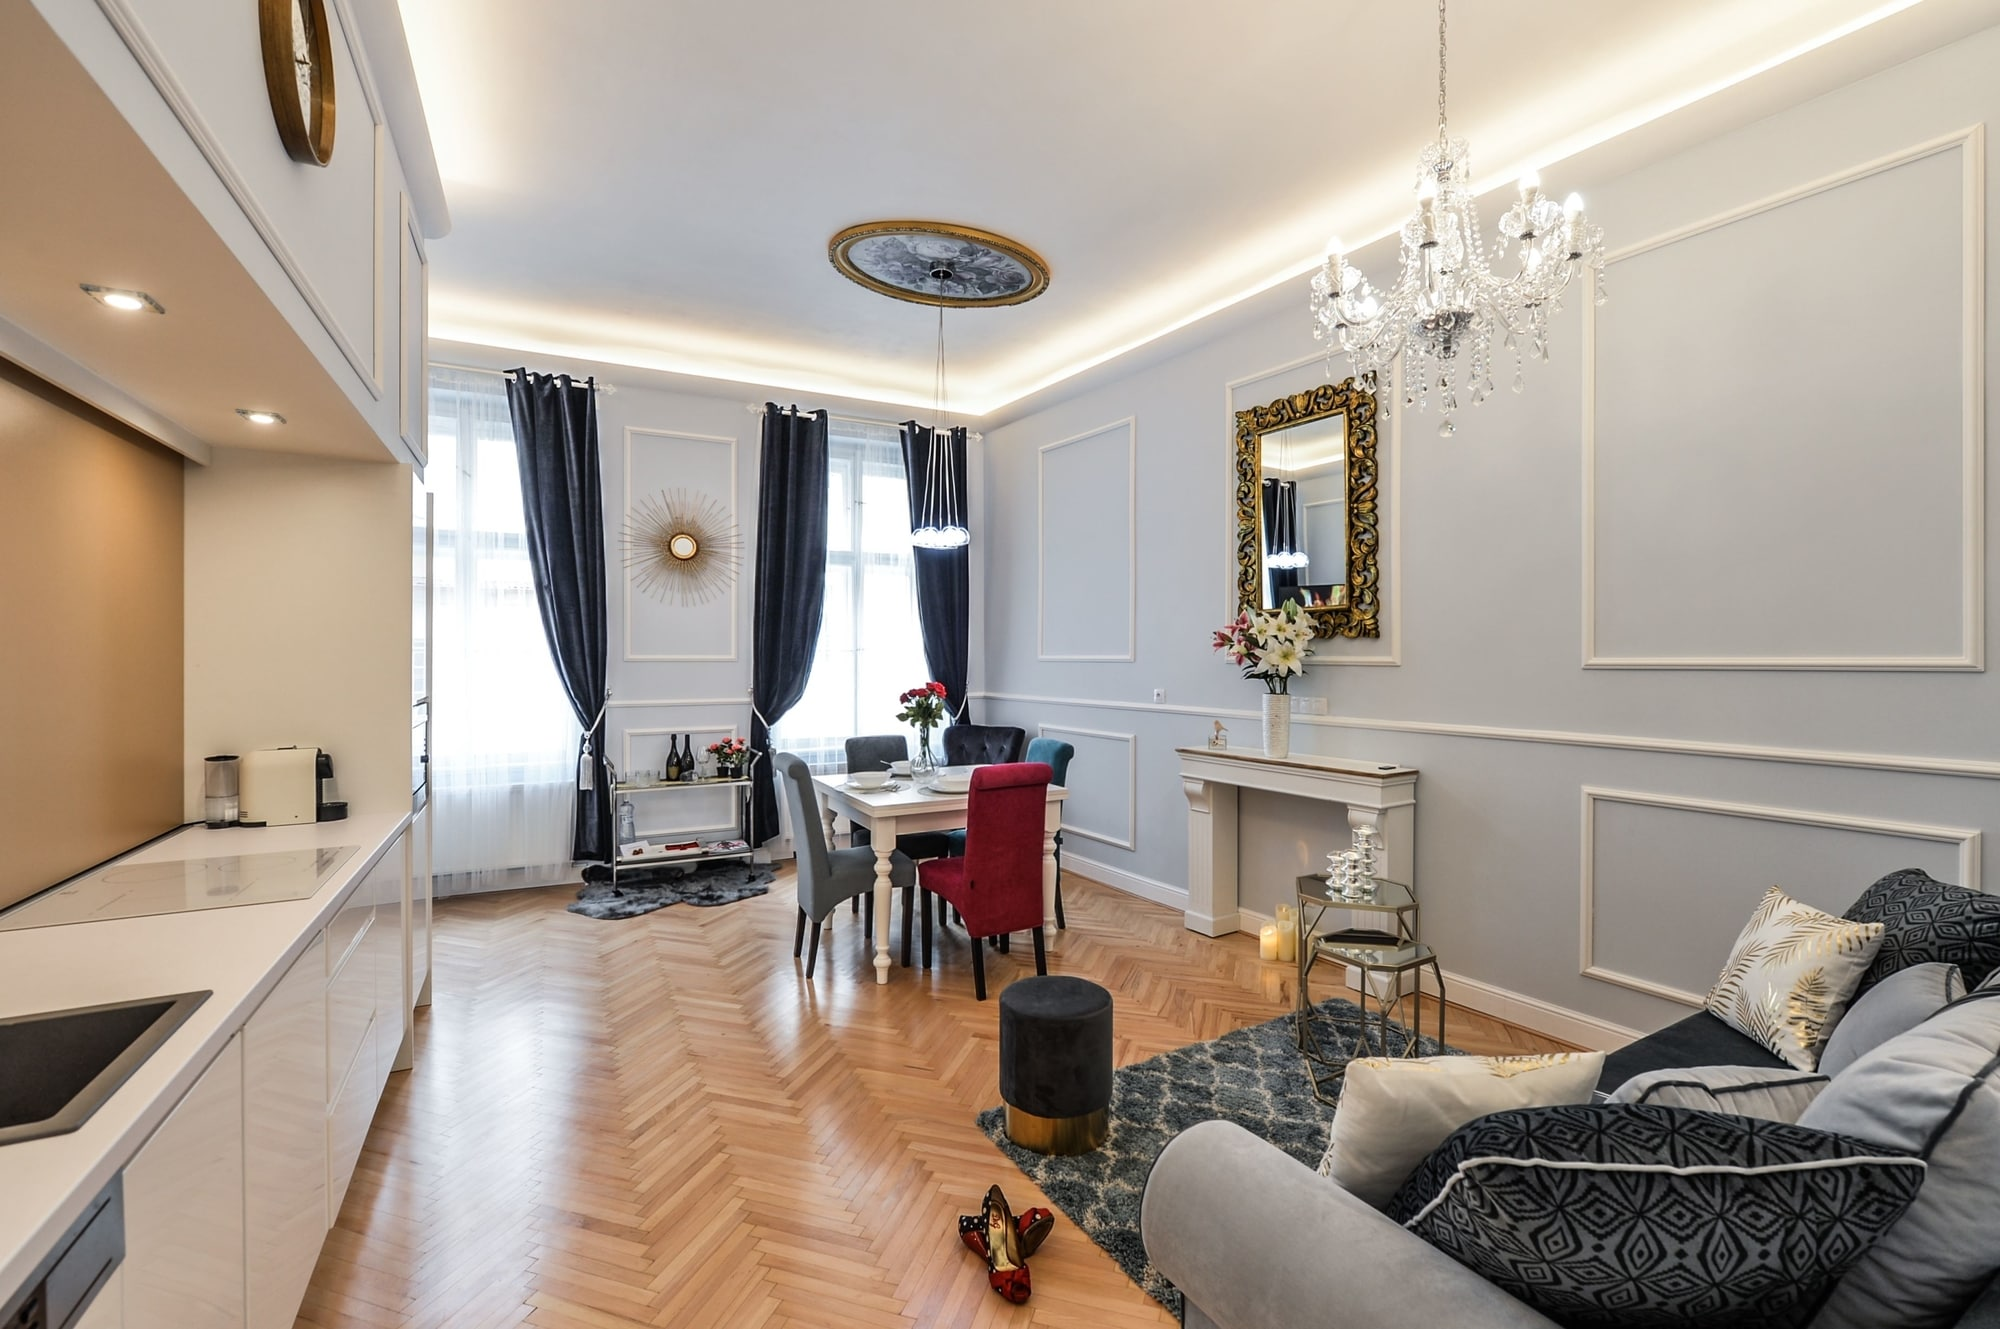 Serviced apartment Prague - living and dining area - wooden flooring